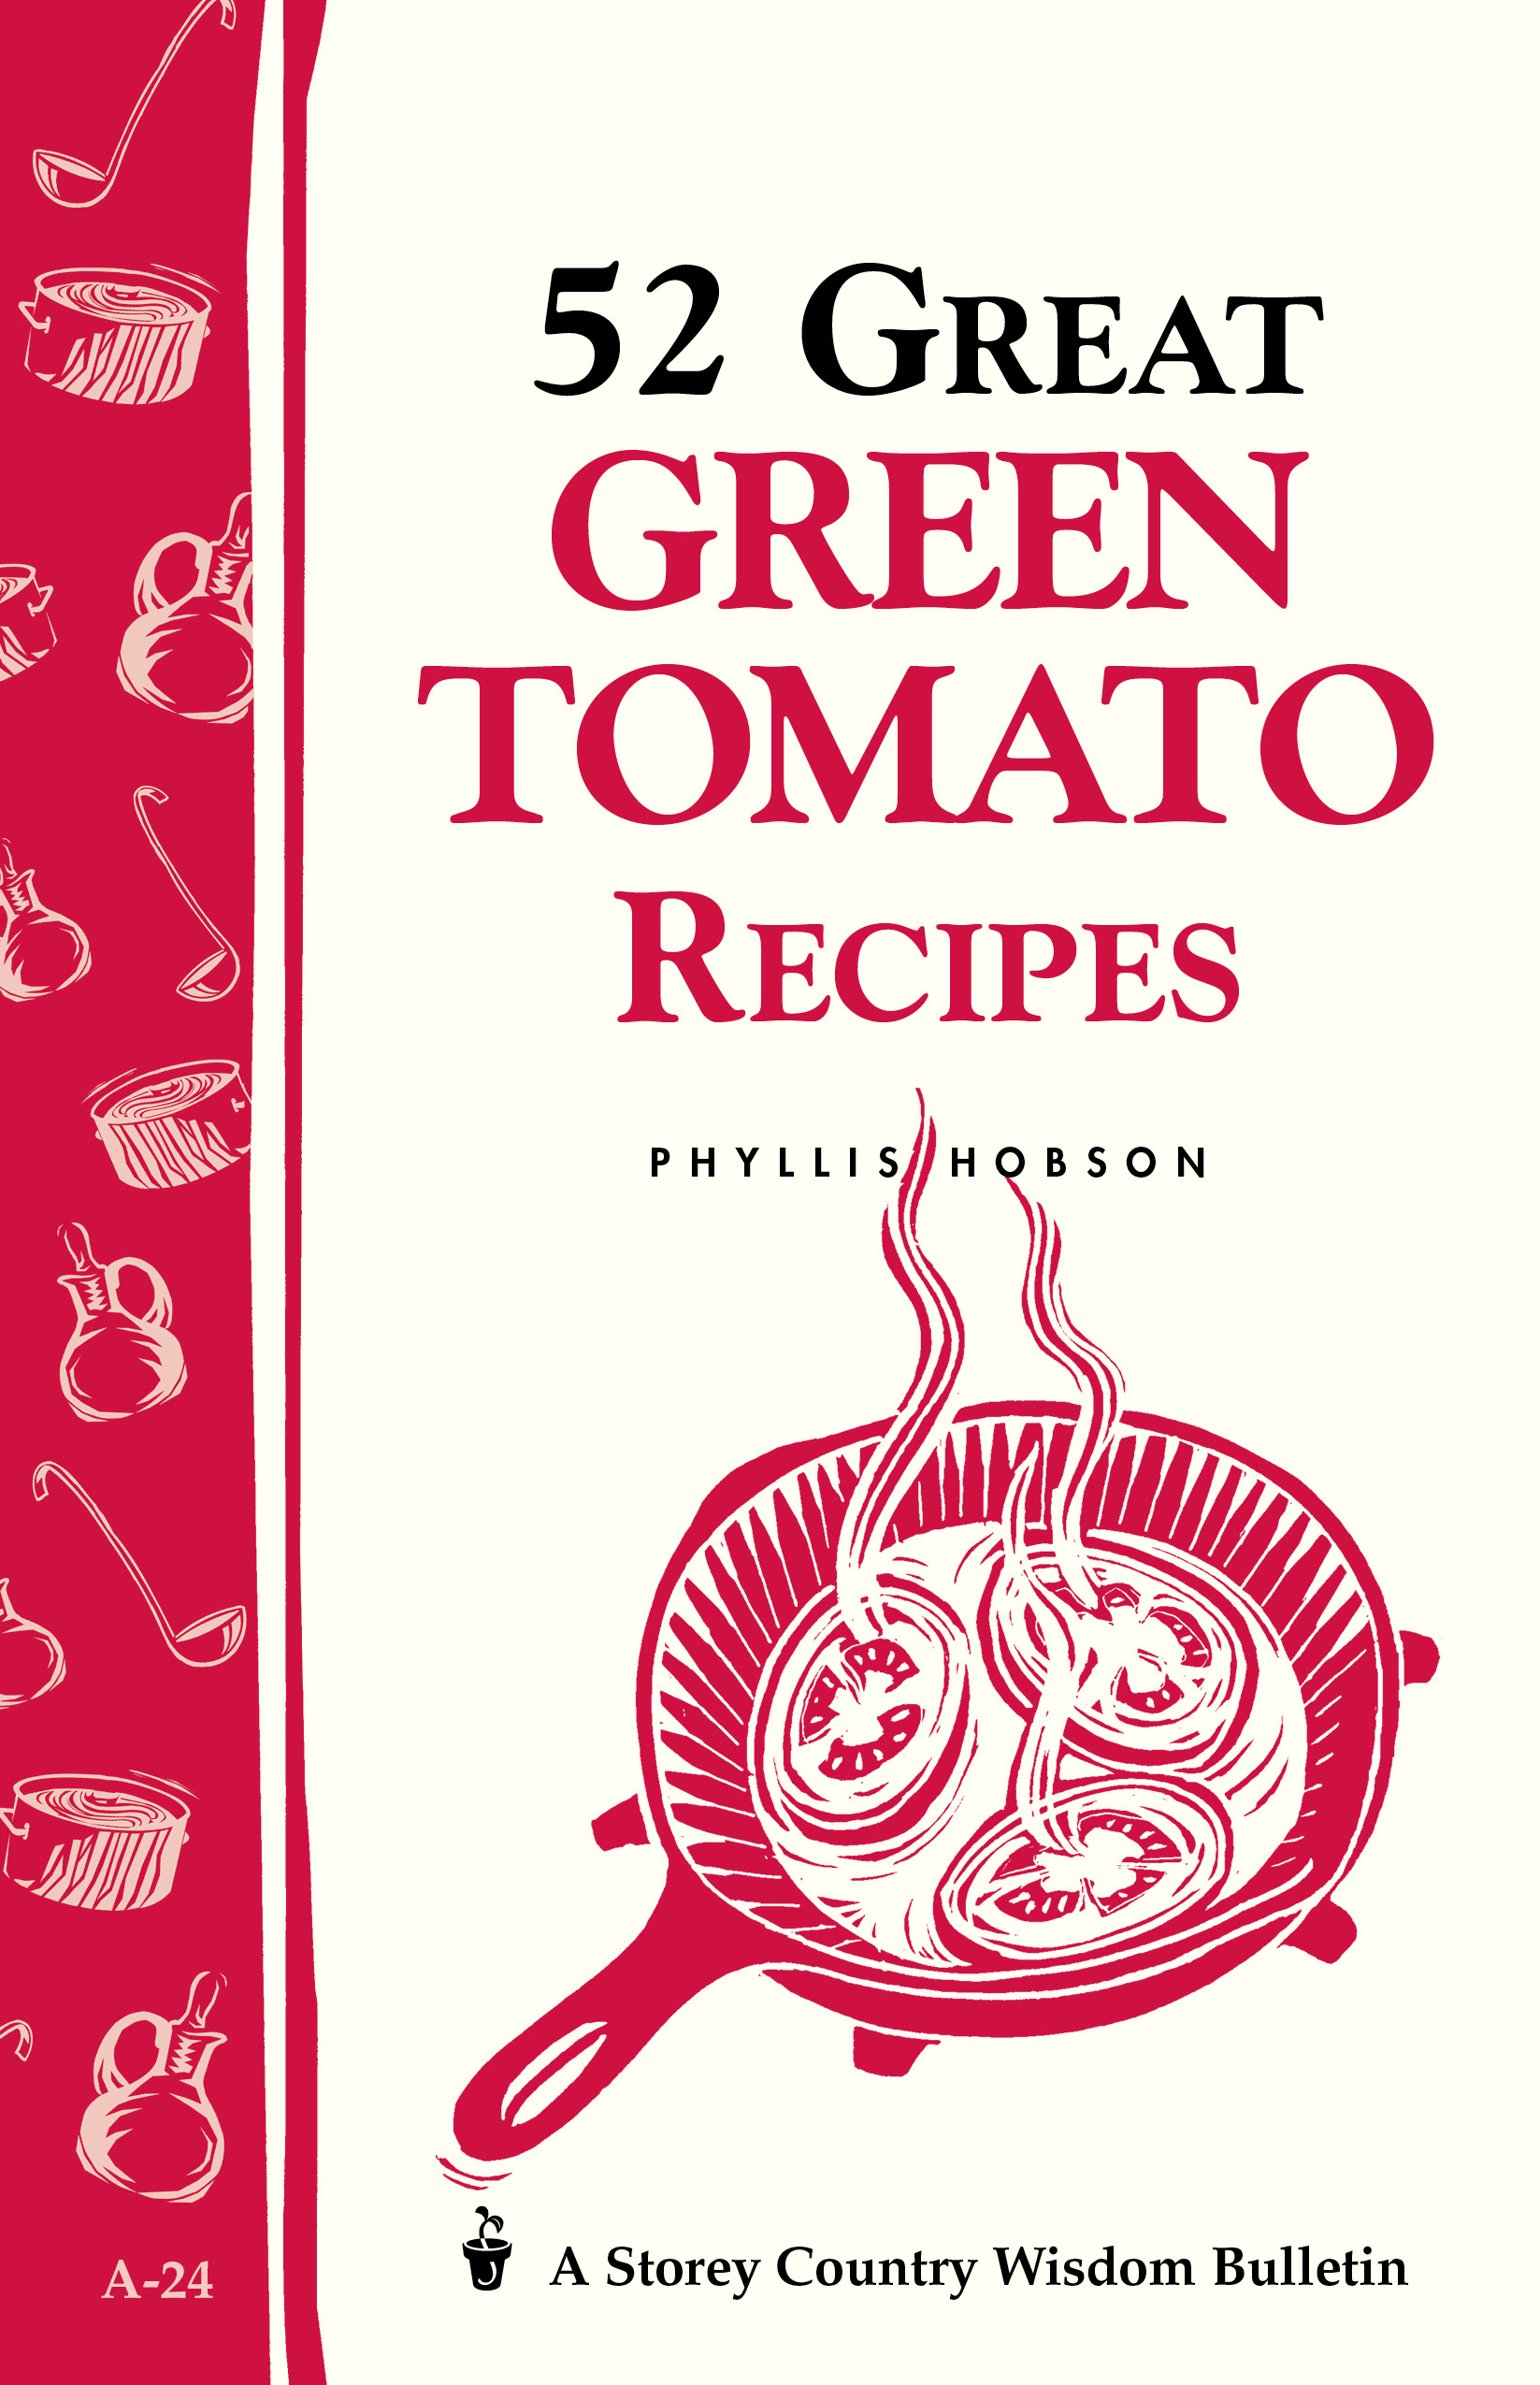 52 Great Green Tomato Recipes Storey's Country Wisdom Bulletin A-24 - Phyllis Hobson